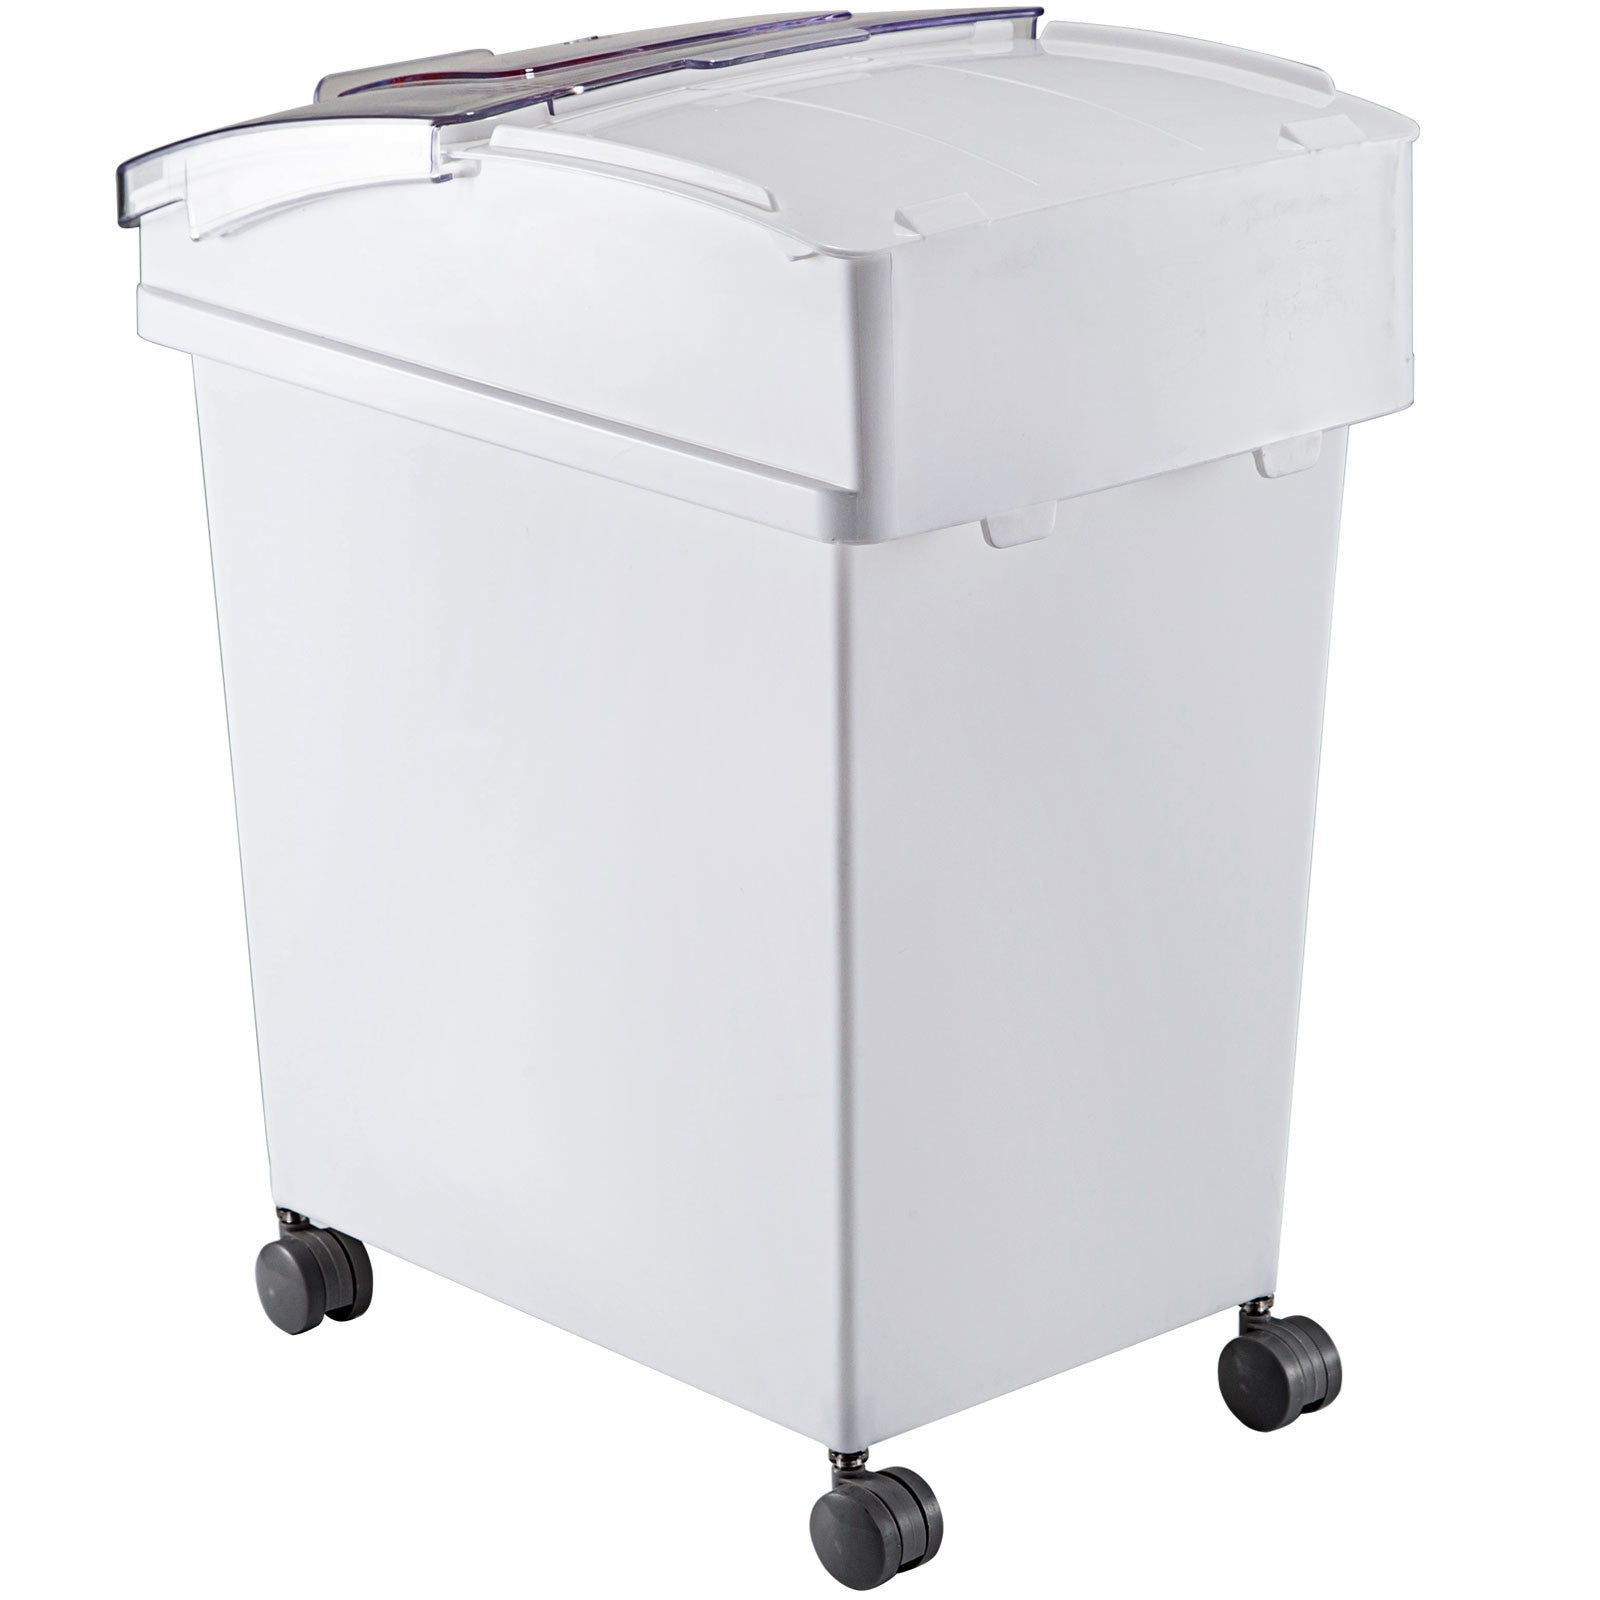 4 Pack Ingredient Storage Bin 10.5 Gal 6.6 Gal Flour Bin On Wheels W/sliding Lid